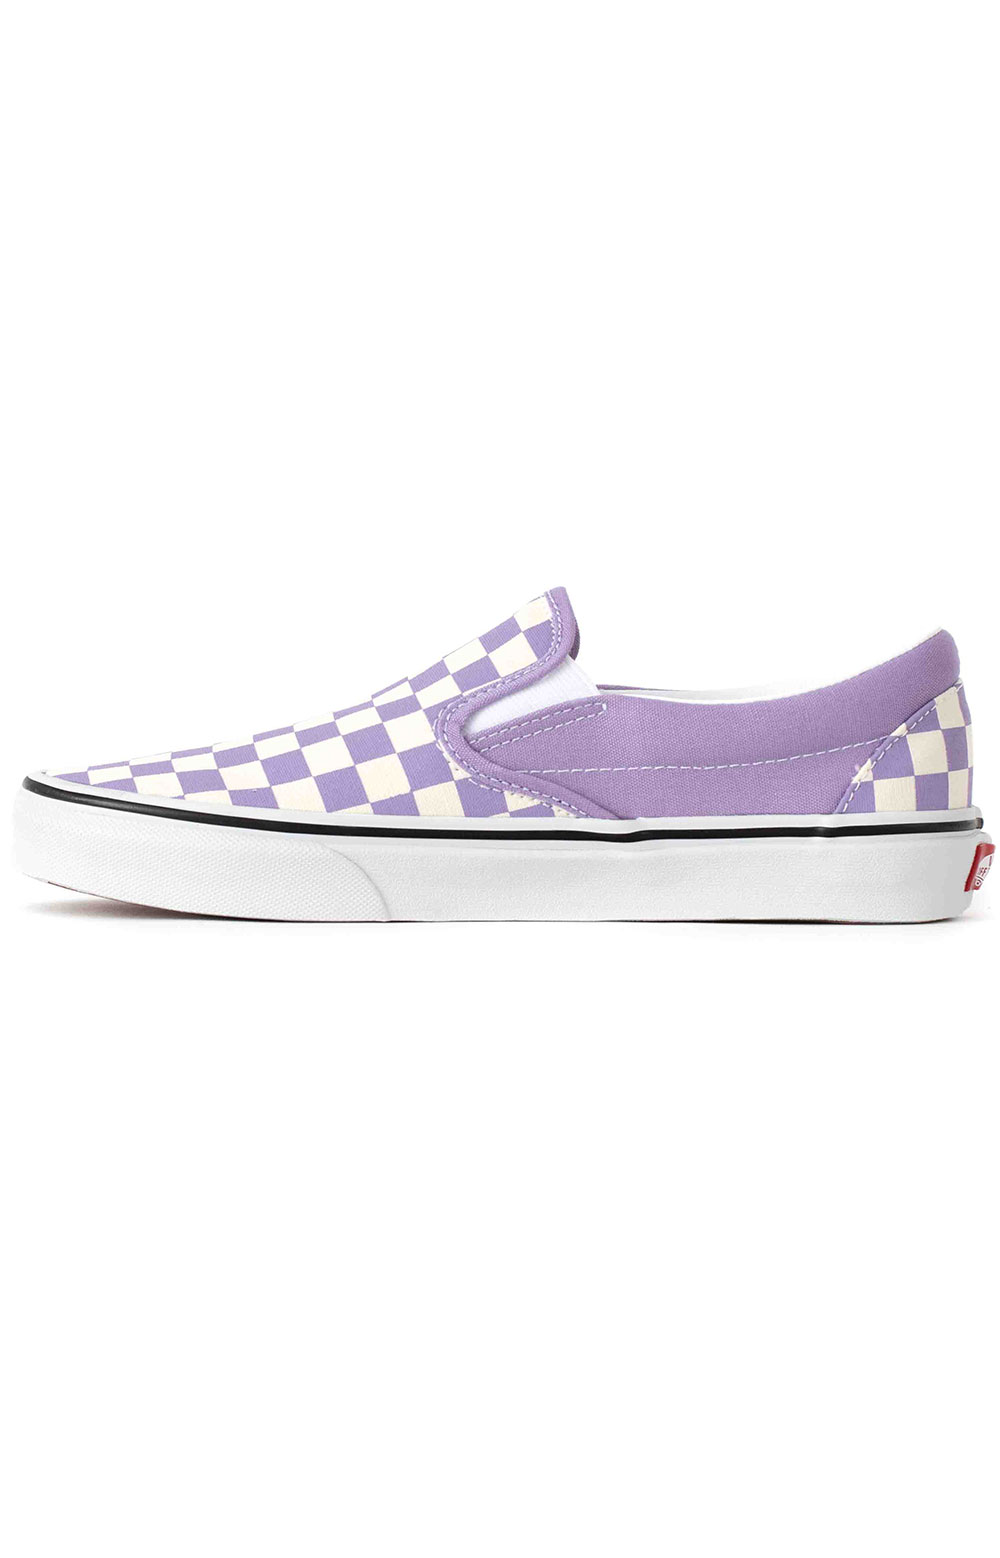 (3TB9HM) Checkerboard Classic Slip-On Shoes - Chalk Violet  4